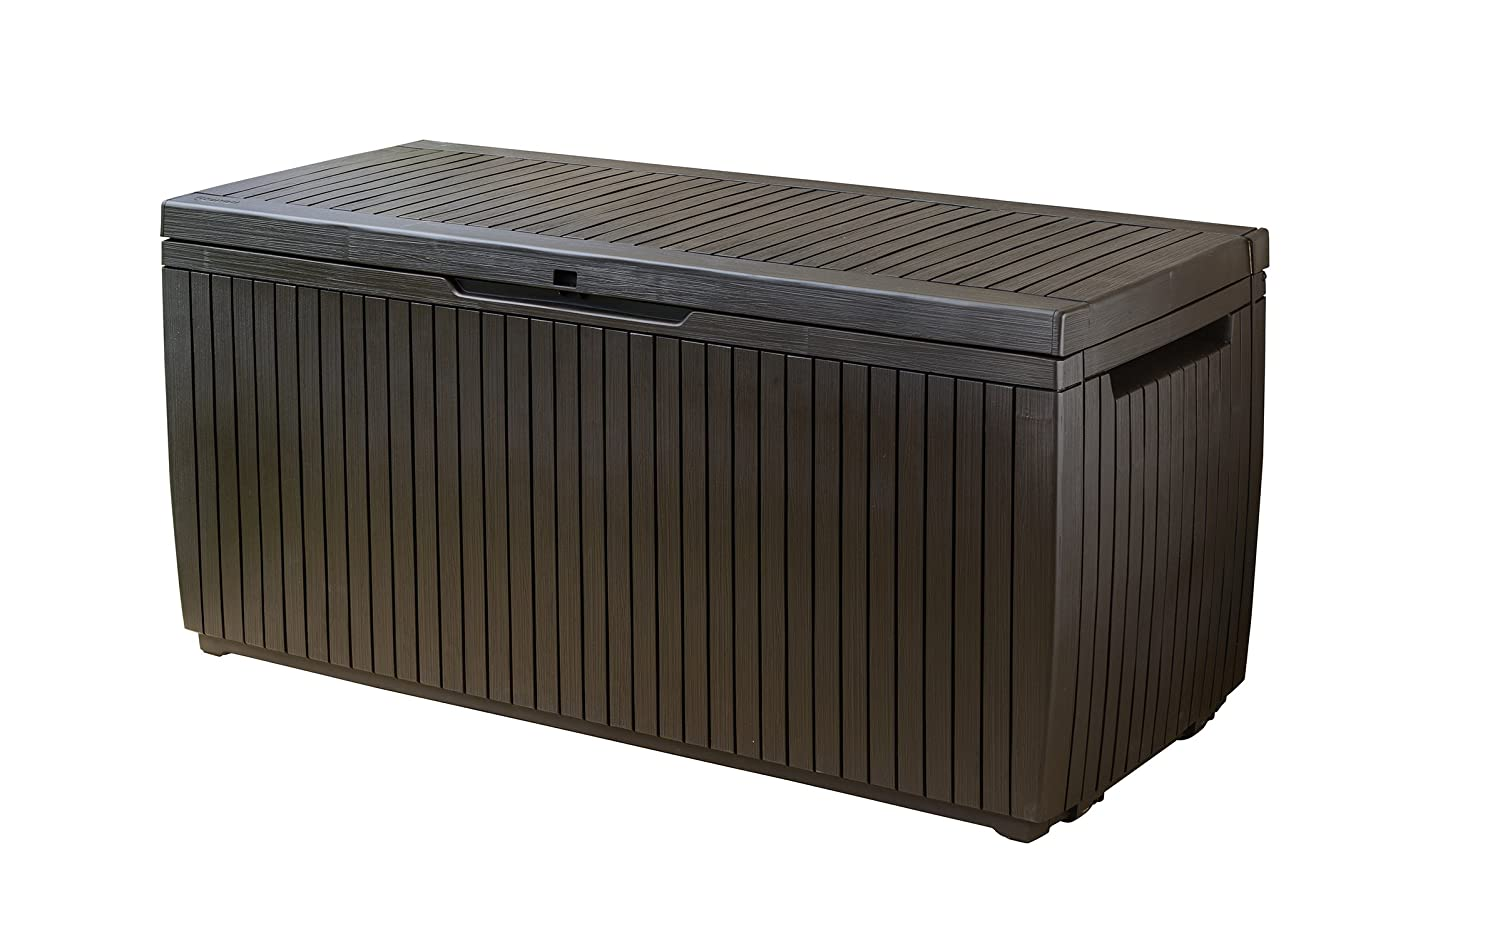 Keter Springwood Plastic Deck Storage Container Box Outdoor Patio Garden Furniture 80 Gal, Brown Keter North America 228832